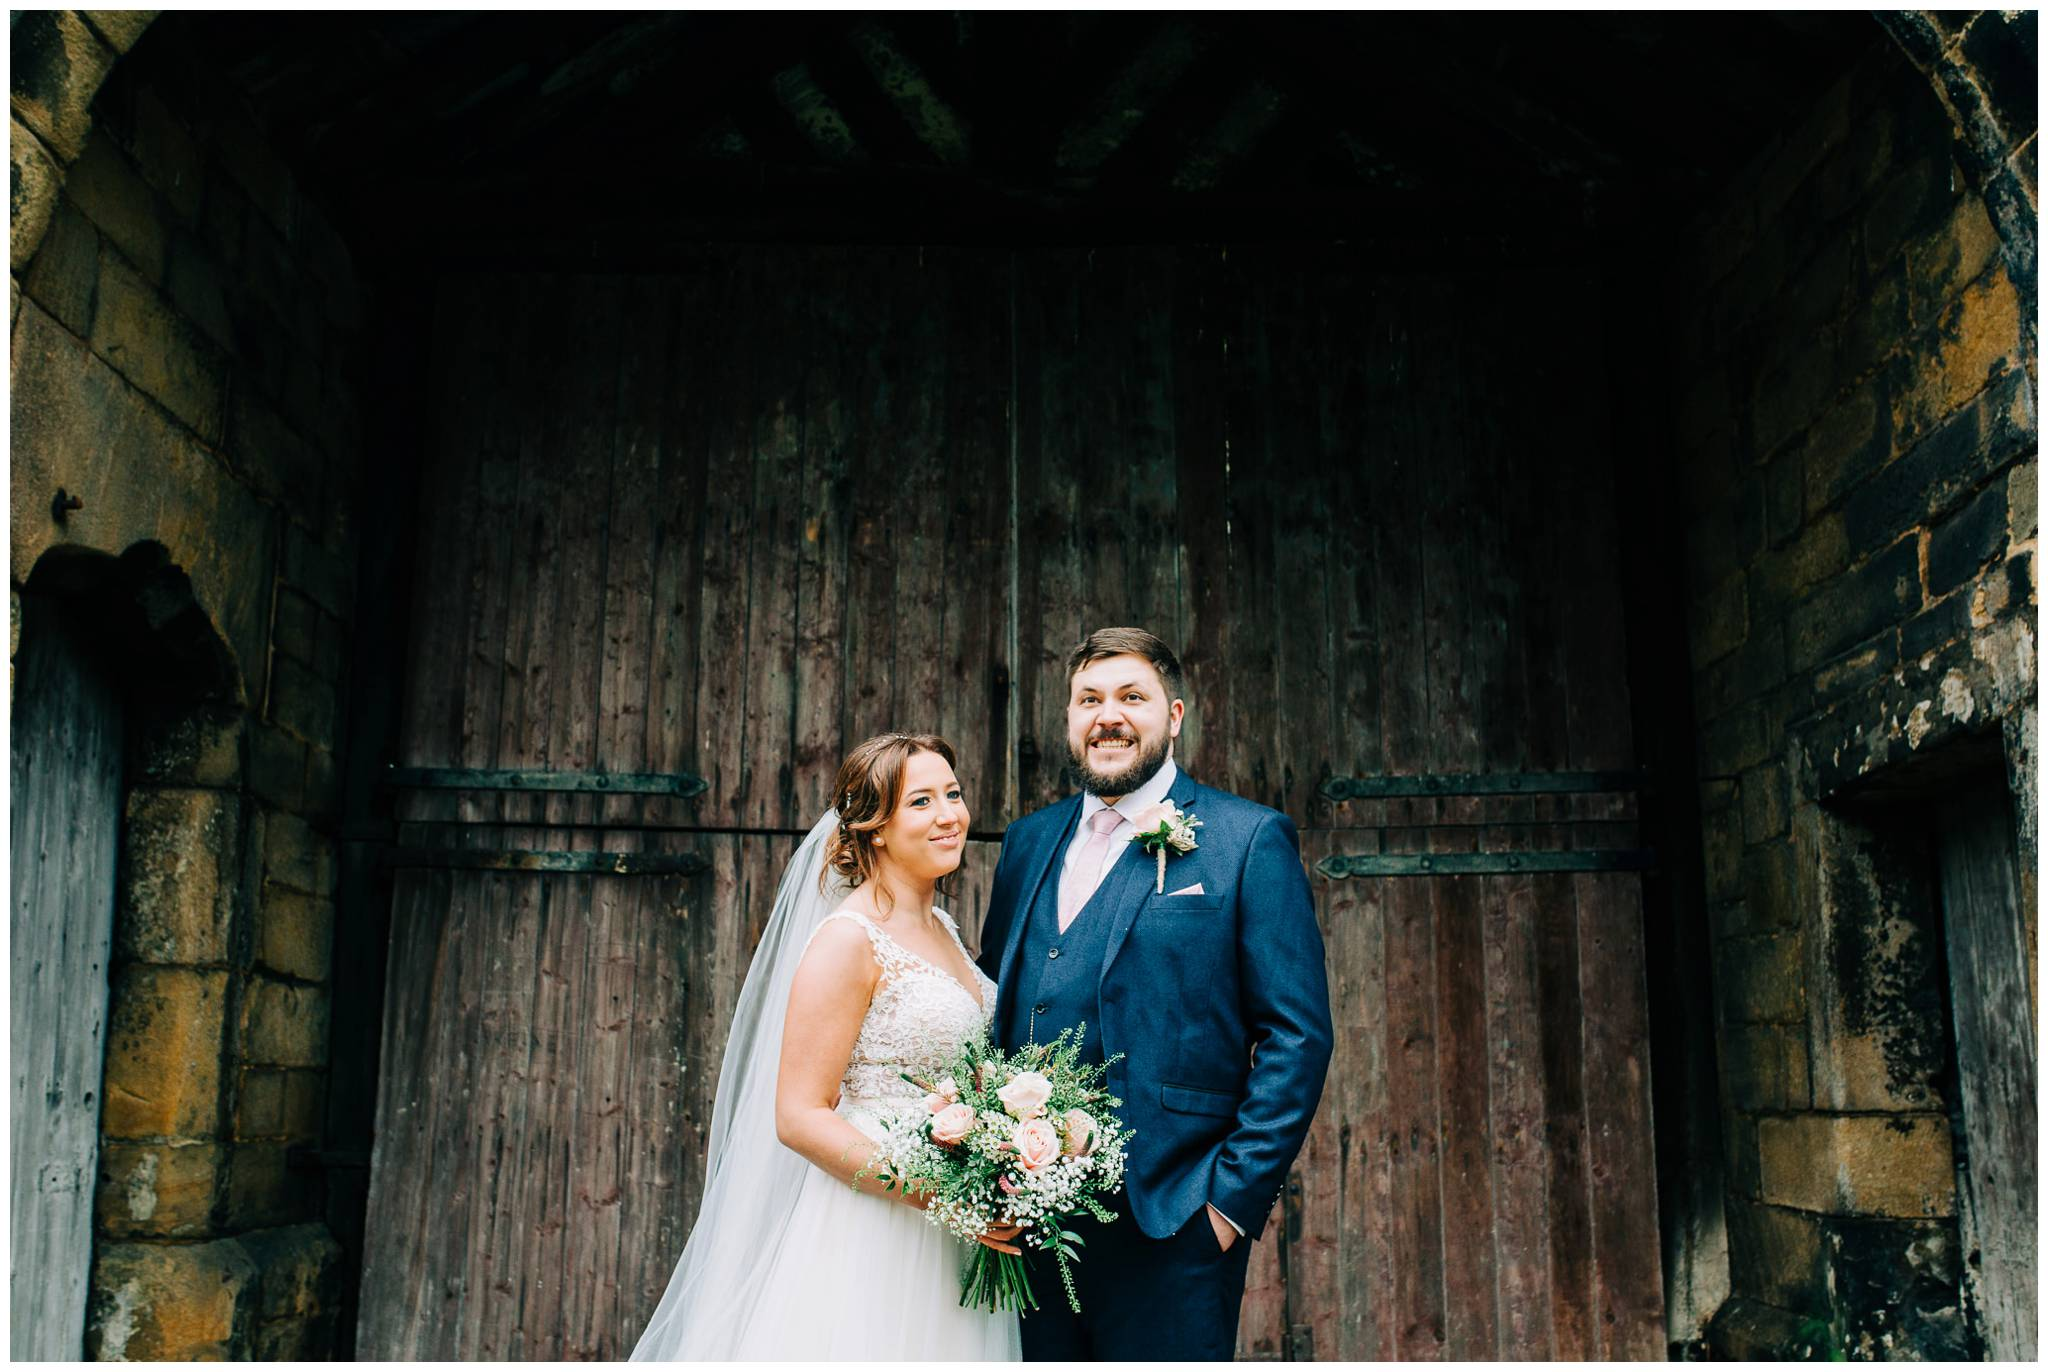 East Riddlesden Hall Photographer - Rustic winter Barn Wedding_0047.jpg